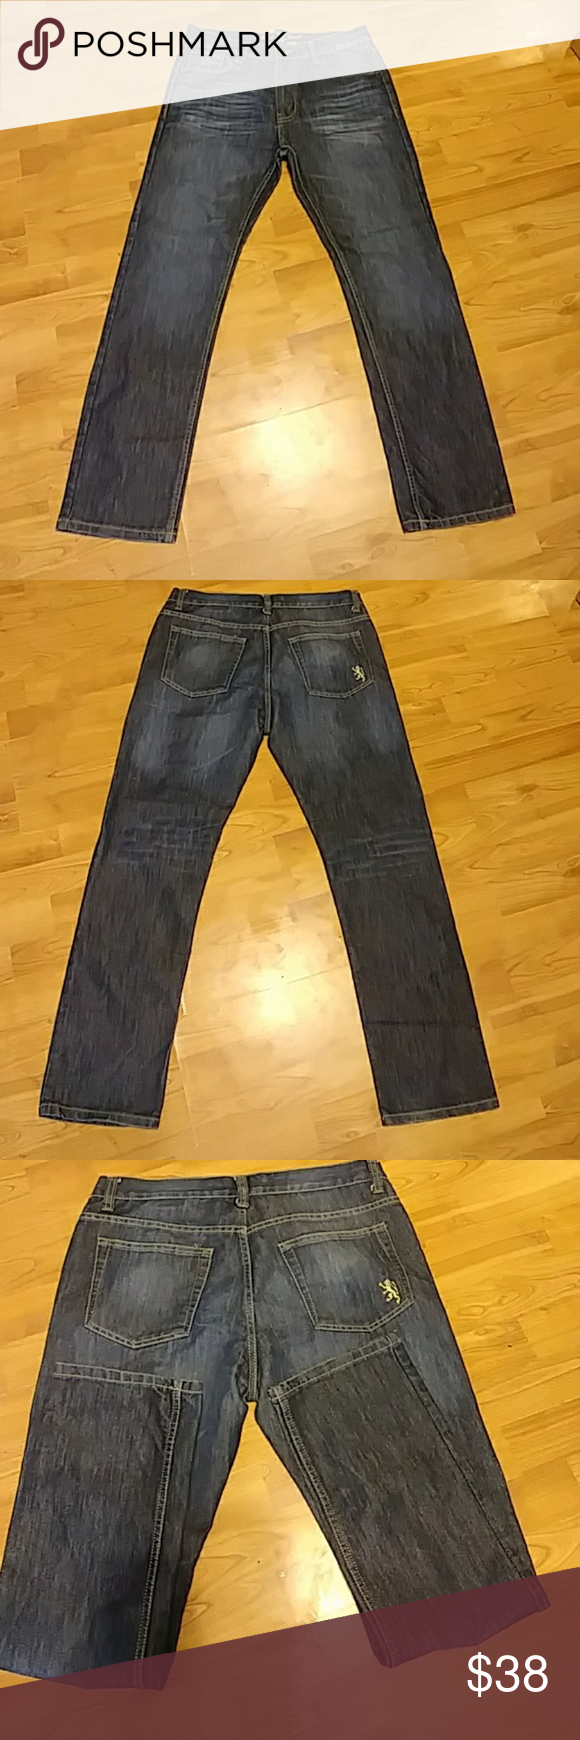 Mens Jeans English Laundry Straight 34x32 Clothes Design Mens